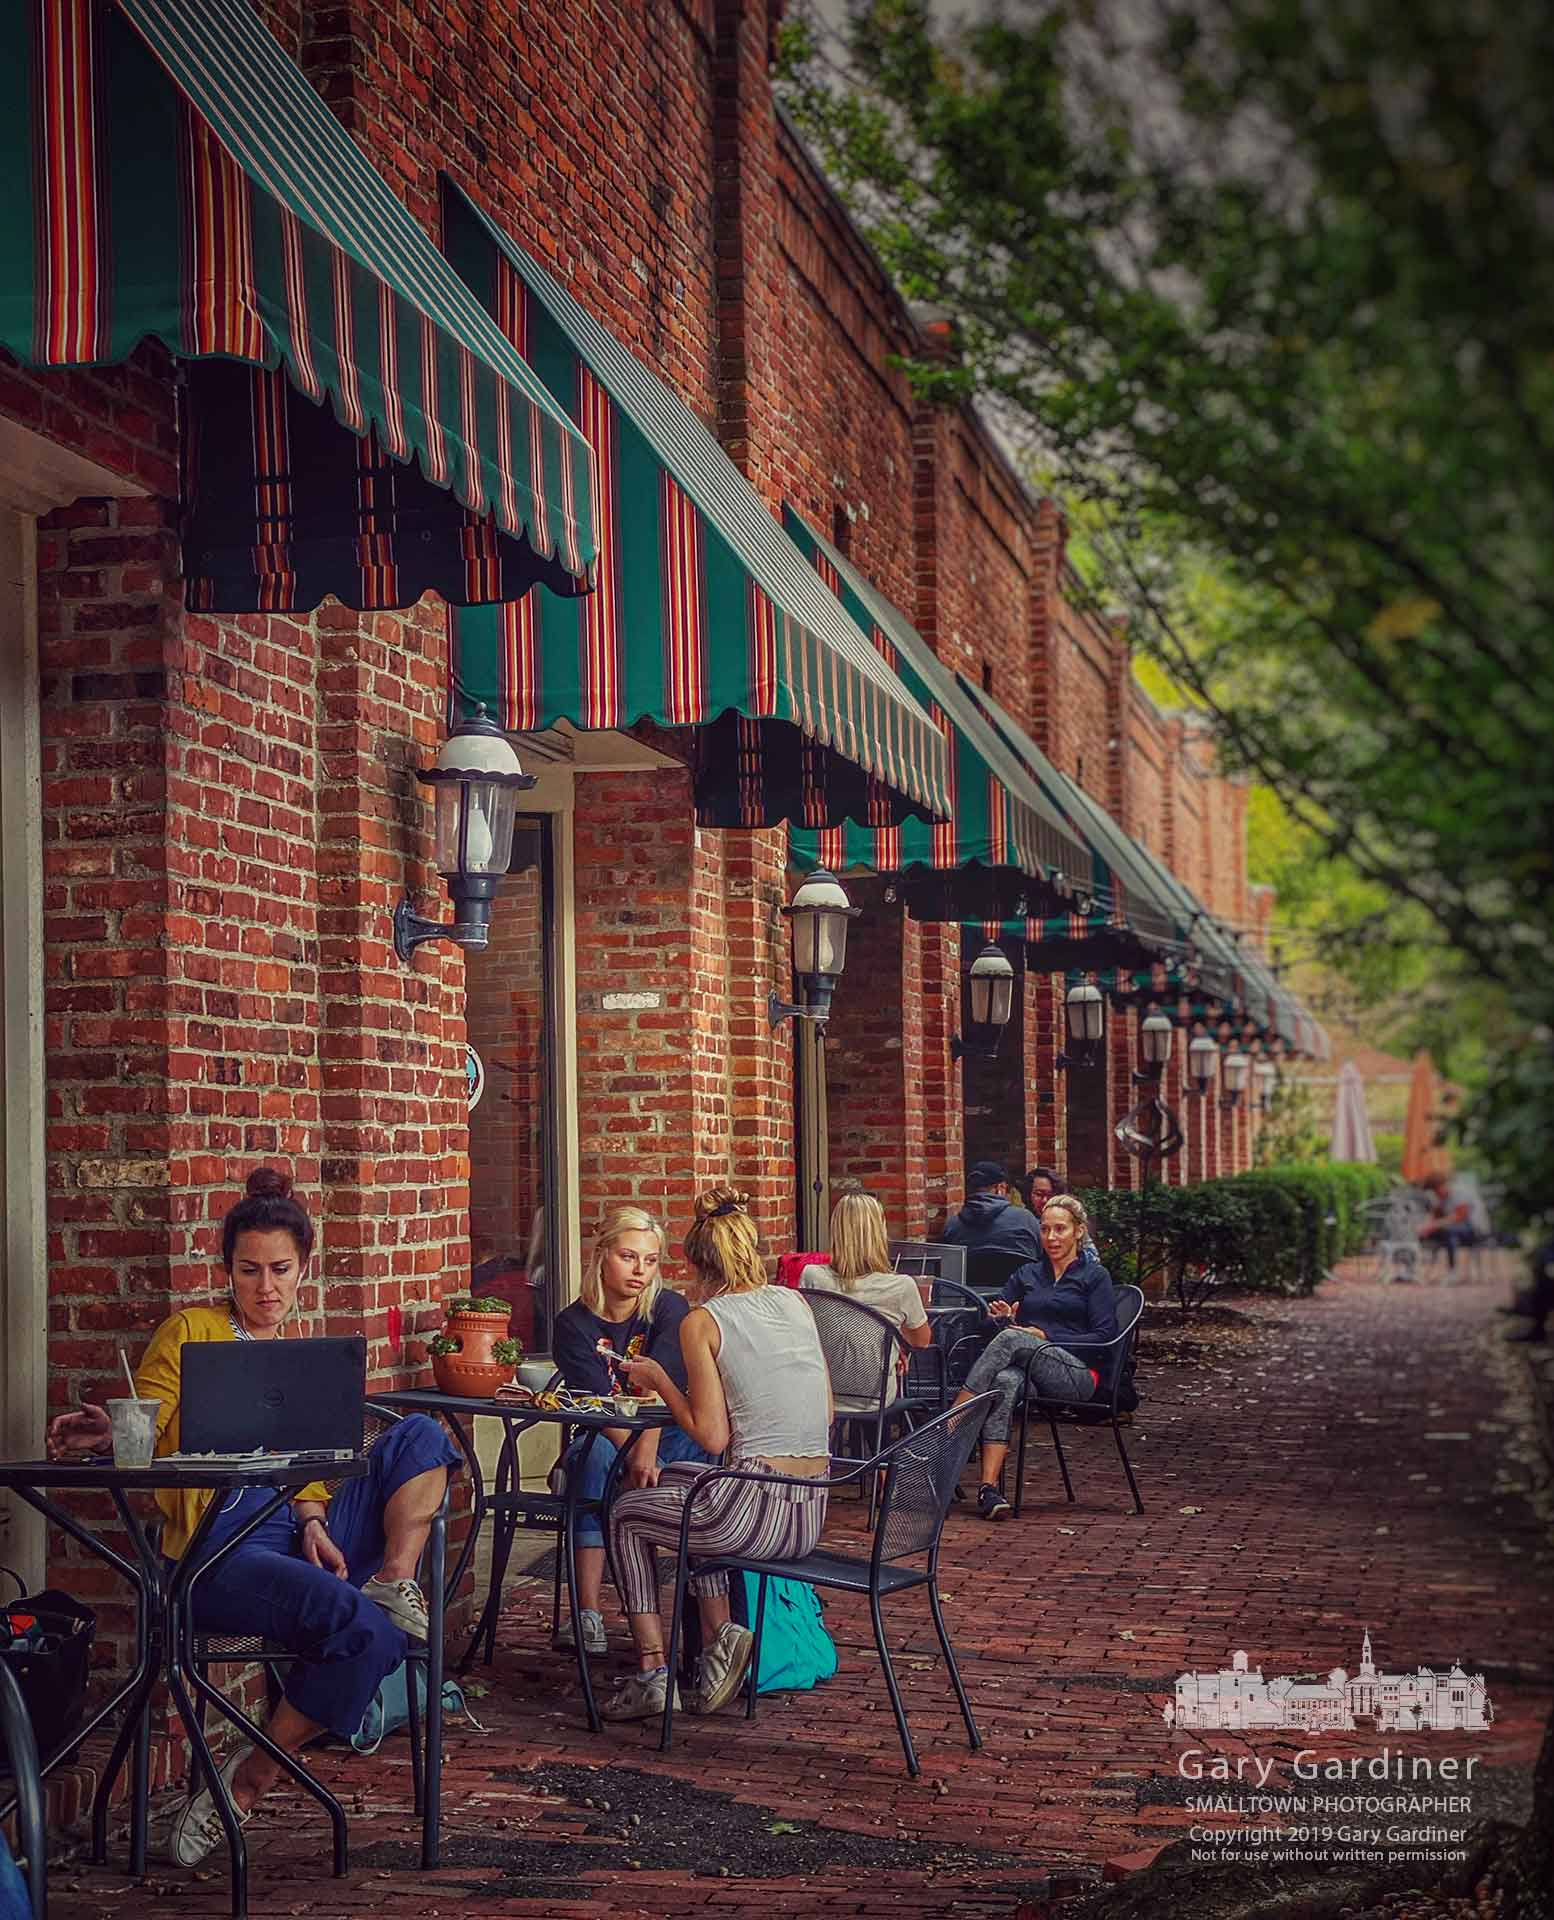 A variety of activities from casual with friends to studying a laptop take place on the brickwalk beside Java Central in Uptown Westerville. My Final Photo for sept. 24, 2019.